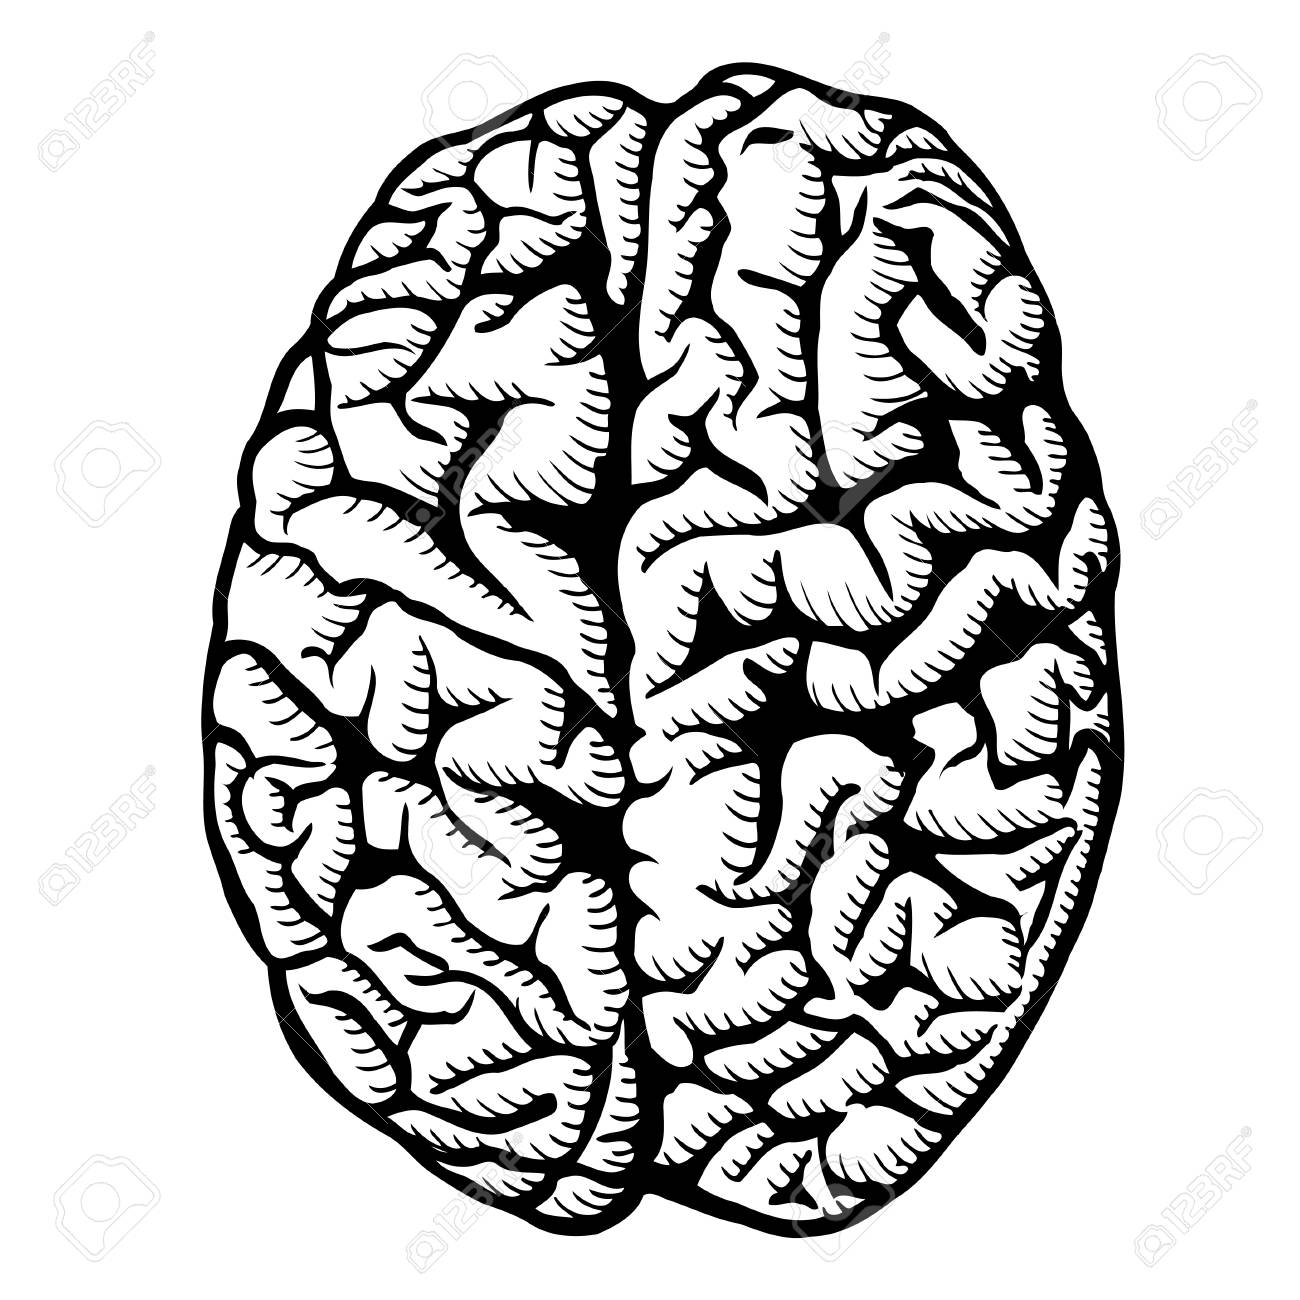 human brain vector illustration isolated on white royalty free rh 123rf com brain clipart vector brain vector art free download